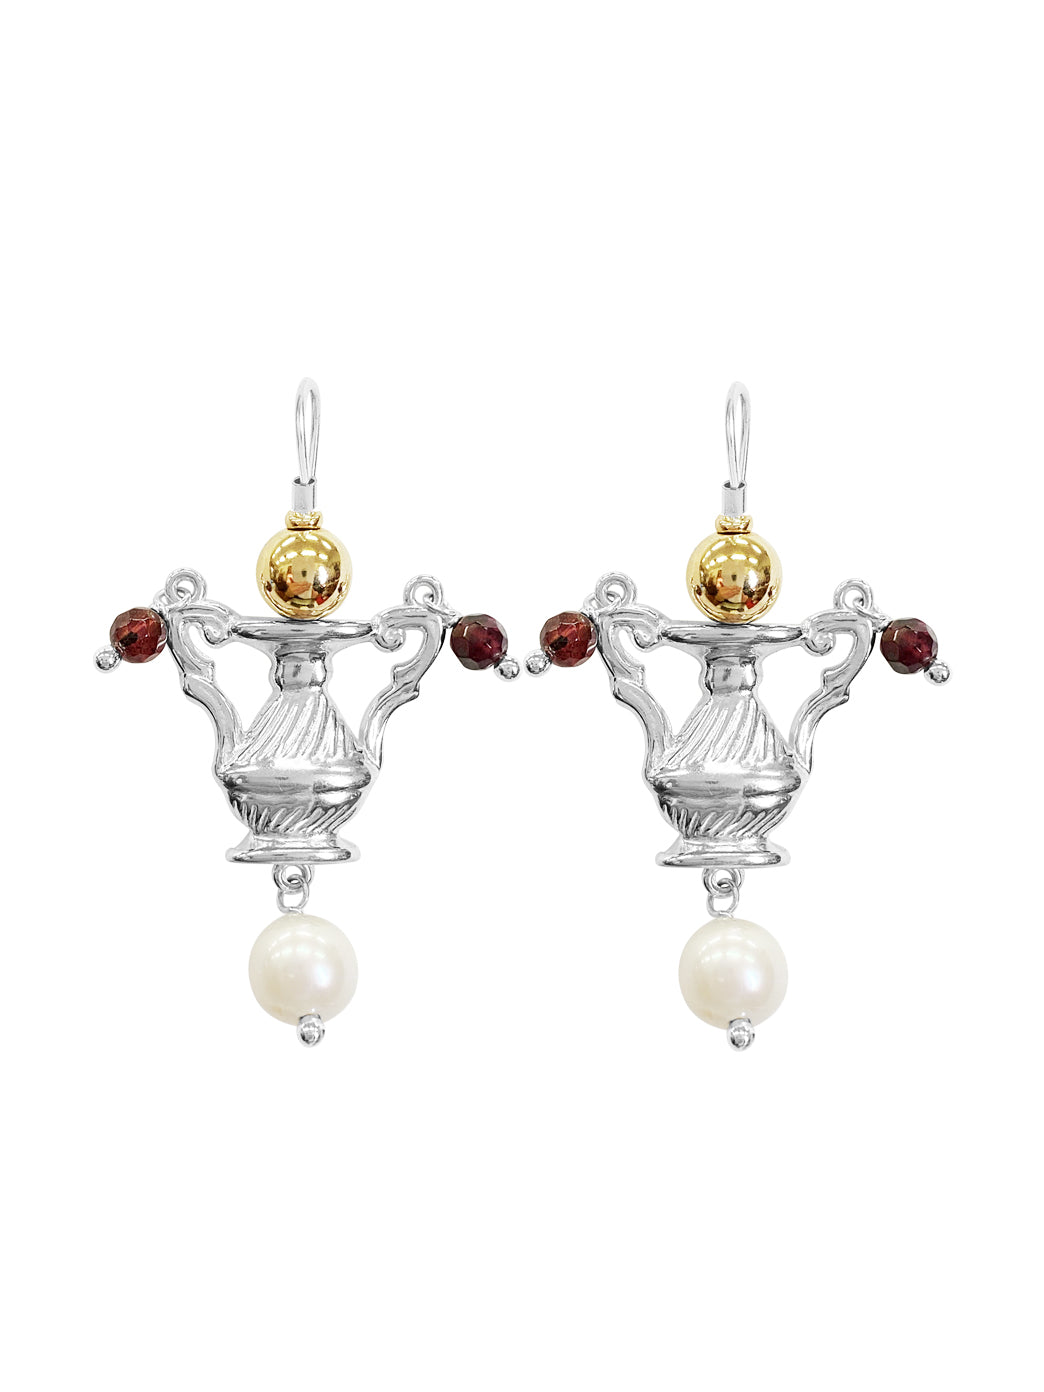 Fiorina Jewellery Como Urn Earrings Garnet and Pearl